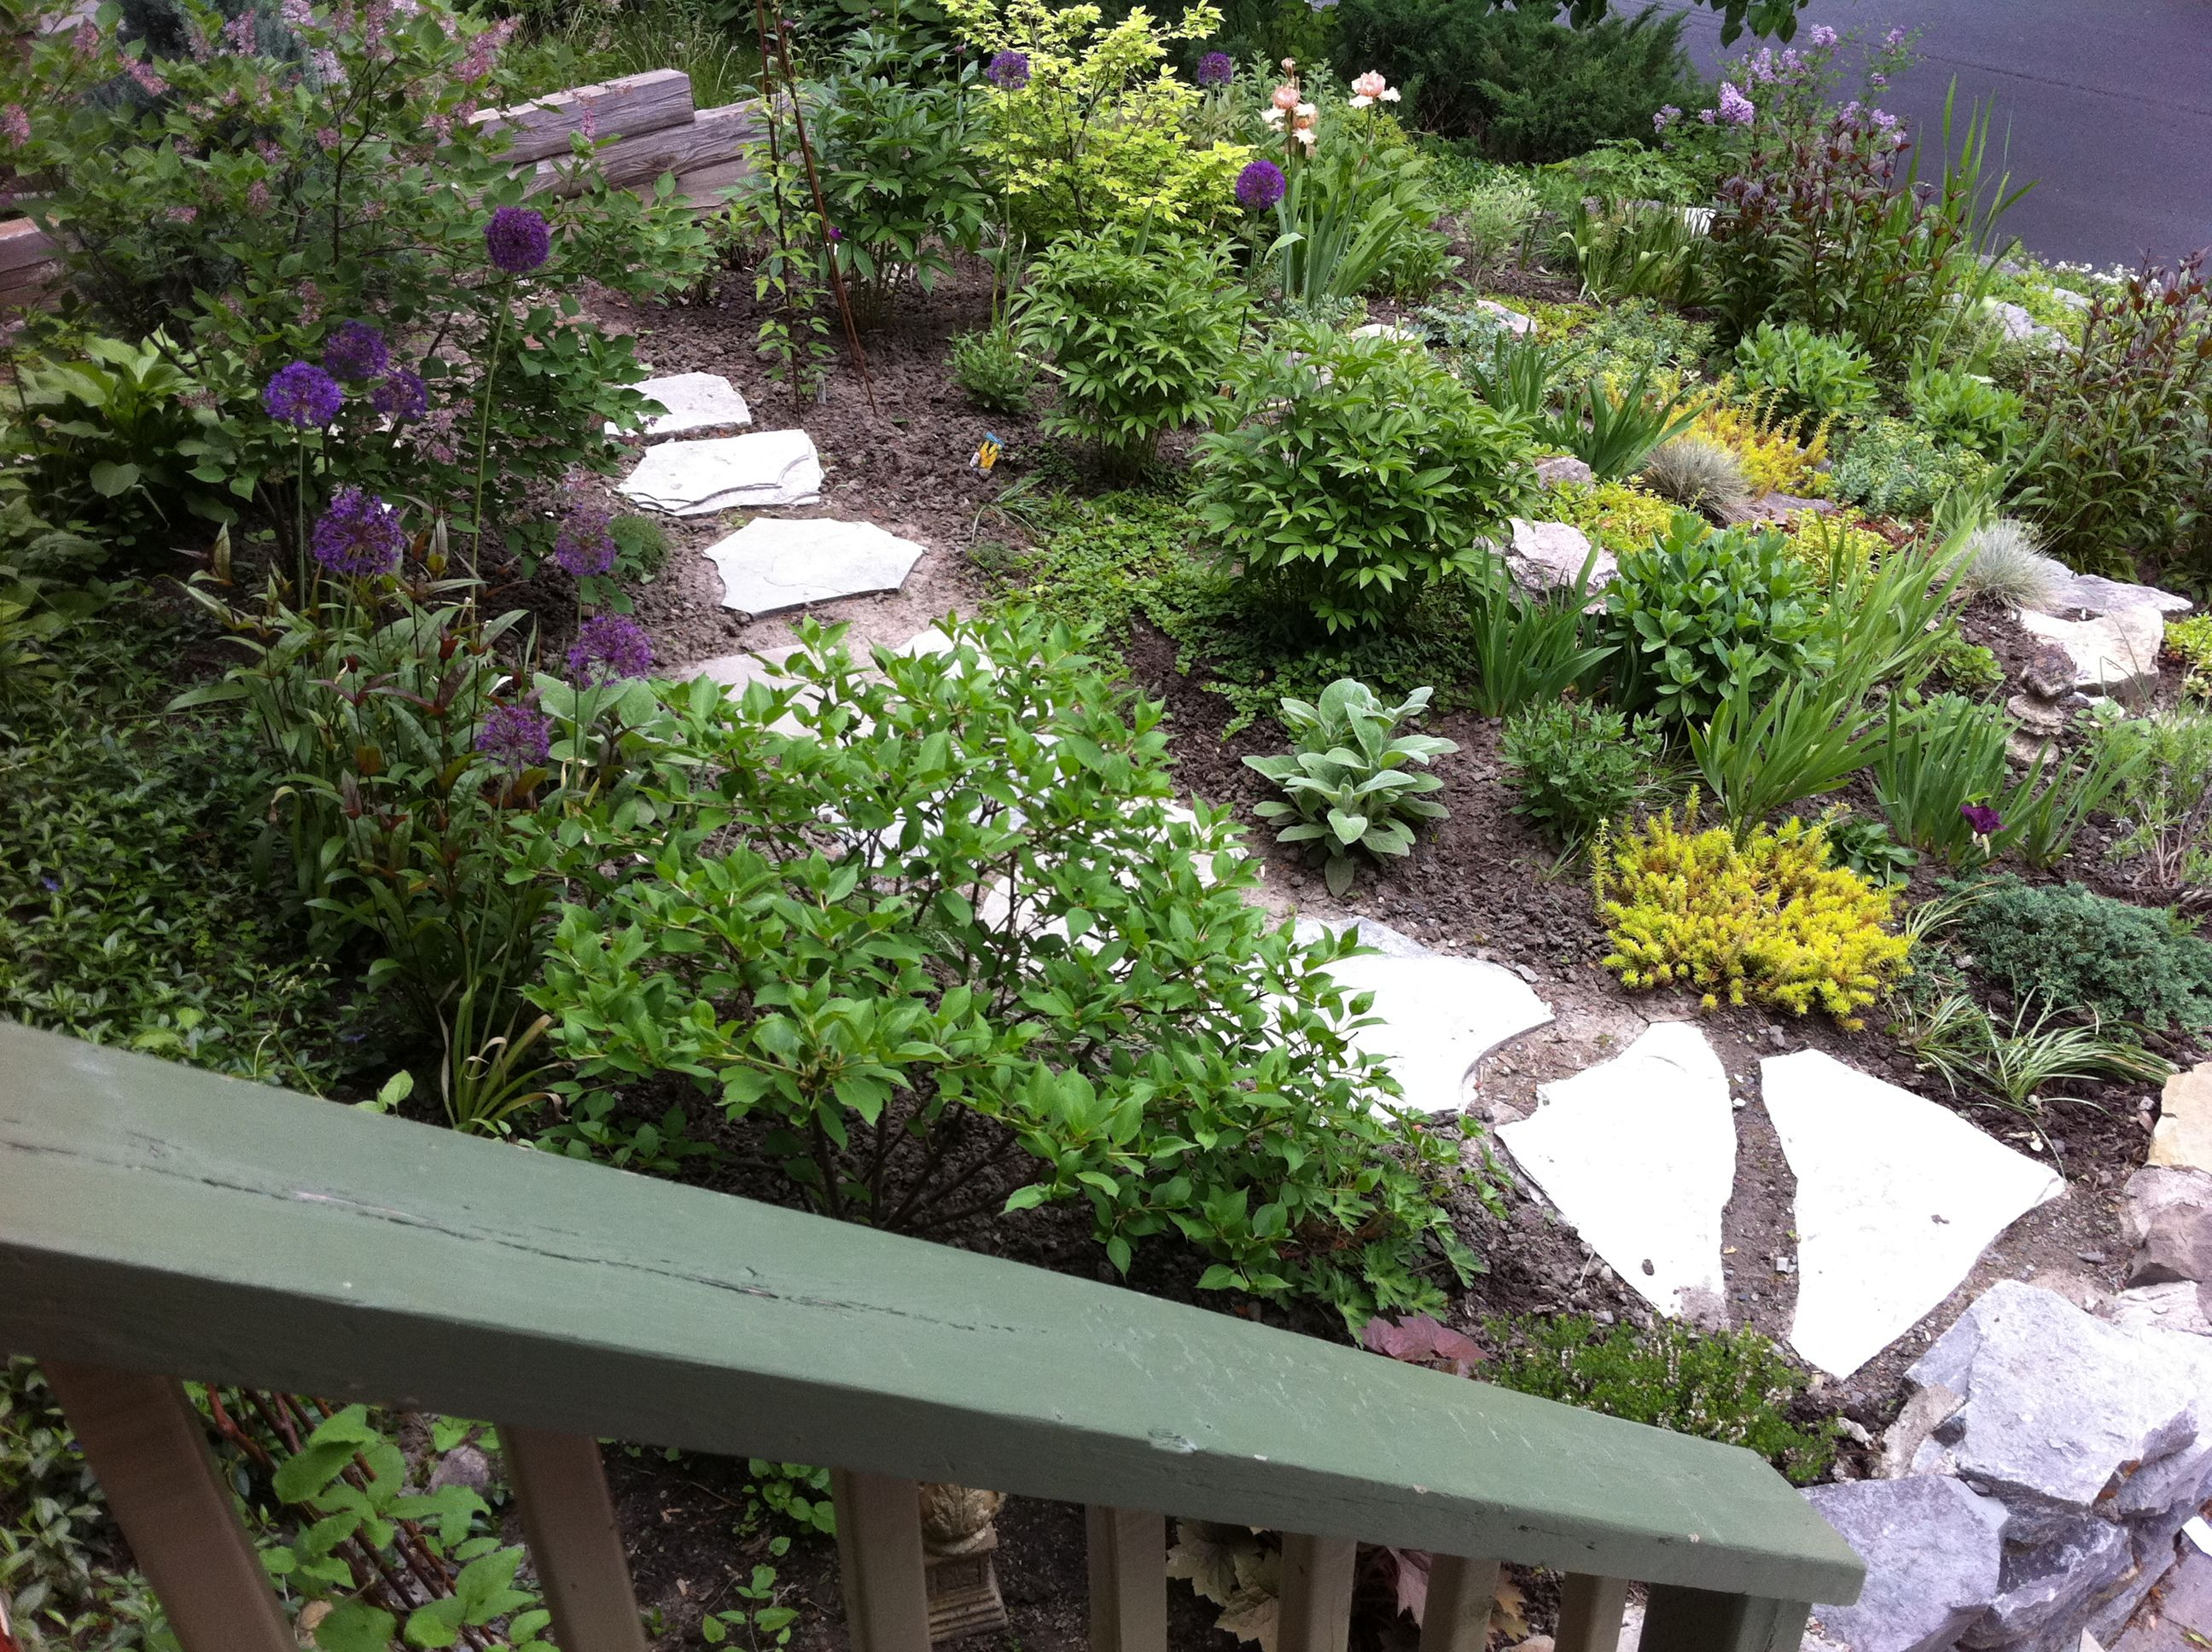 Landscaping Ideas East : Walkway plants landscape ideas east side front of